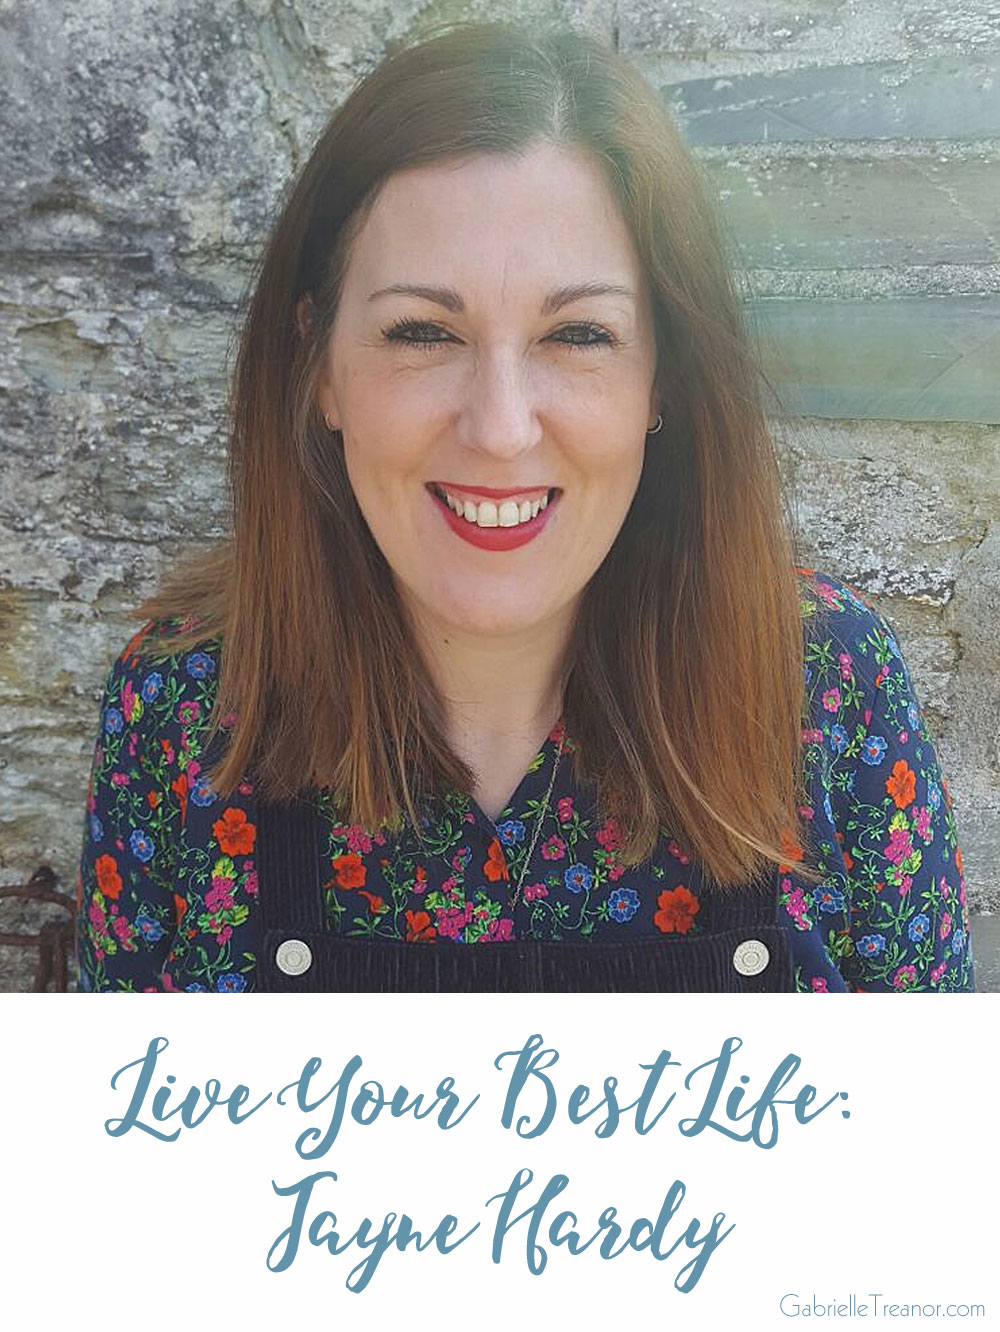 Inspiring interview with The Blurt Foundation founder Jayne Hardy